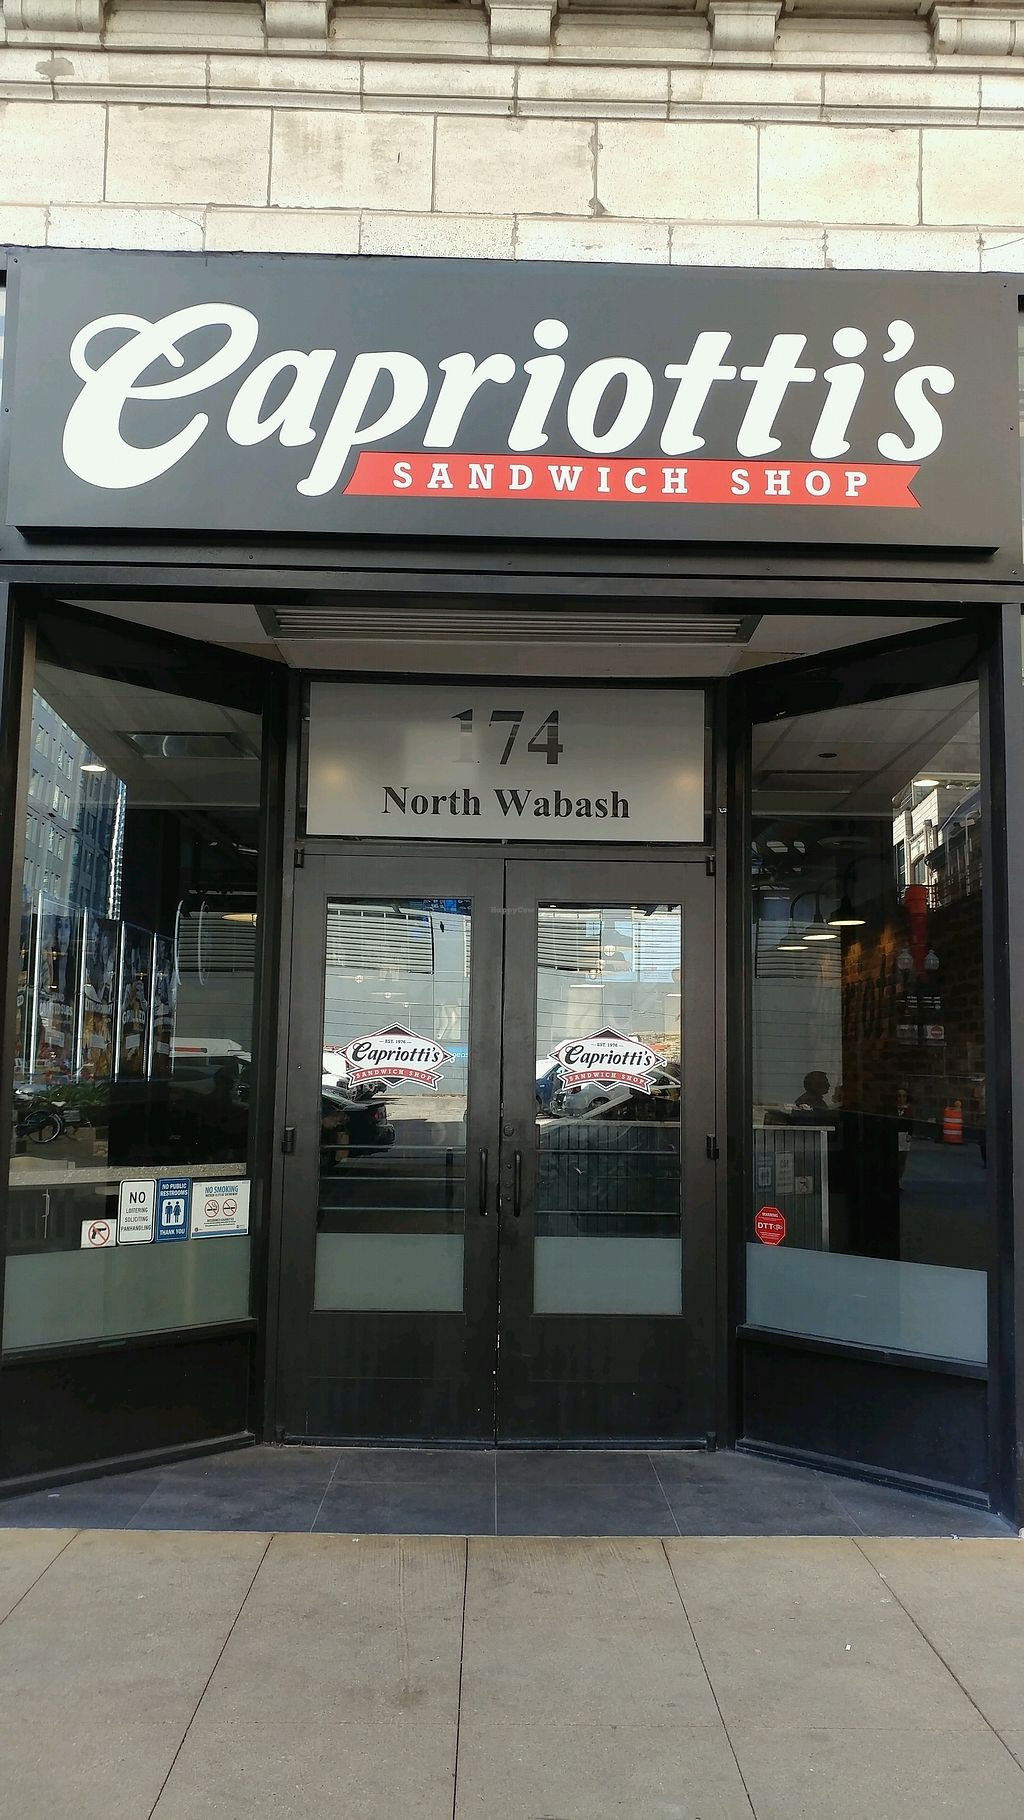 """Photo of Capriotti's Sandwich Shop  by <a href=""""/members/profile/mster9ball1"""">mster9ball1</a> <br/>on 174 North Wabash  <br/> September 18, 2017  - <a href='/contact/abuse/image/82834/305838'>Report</a>"""